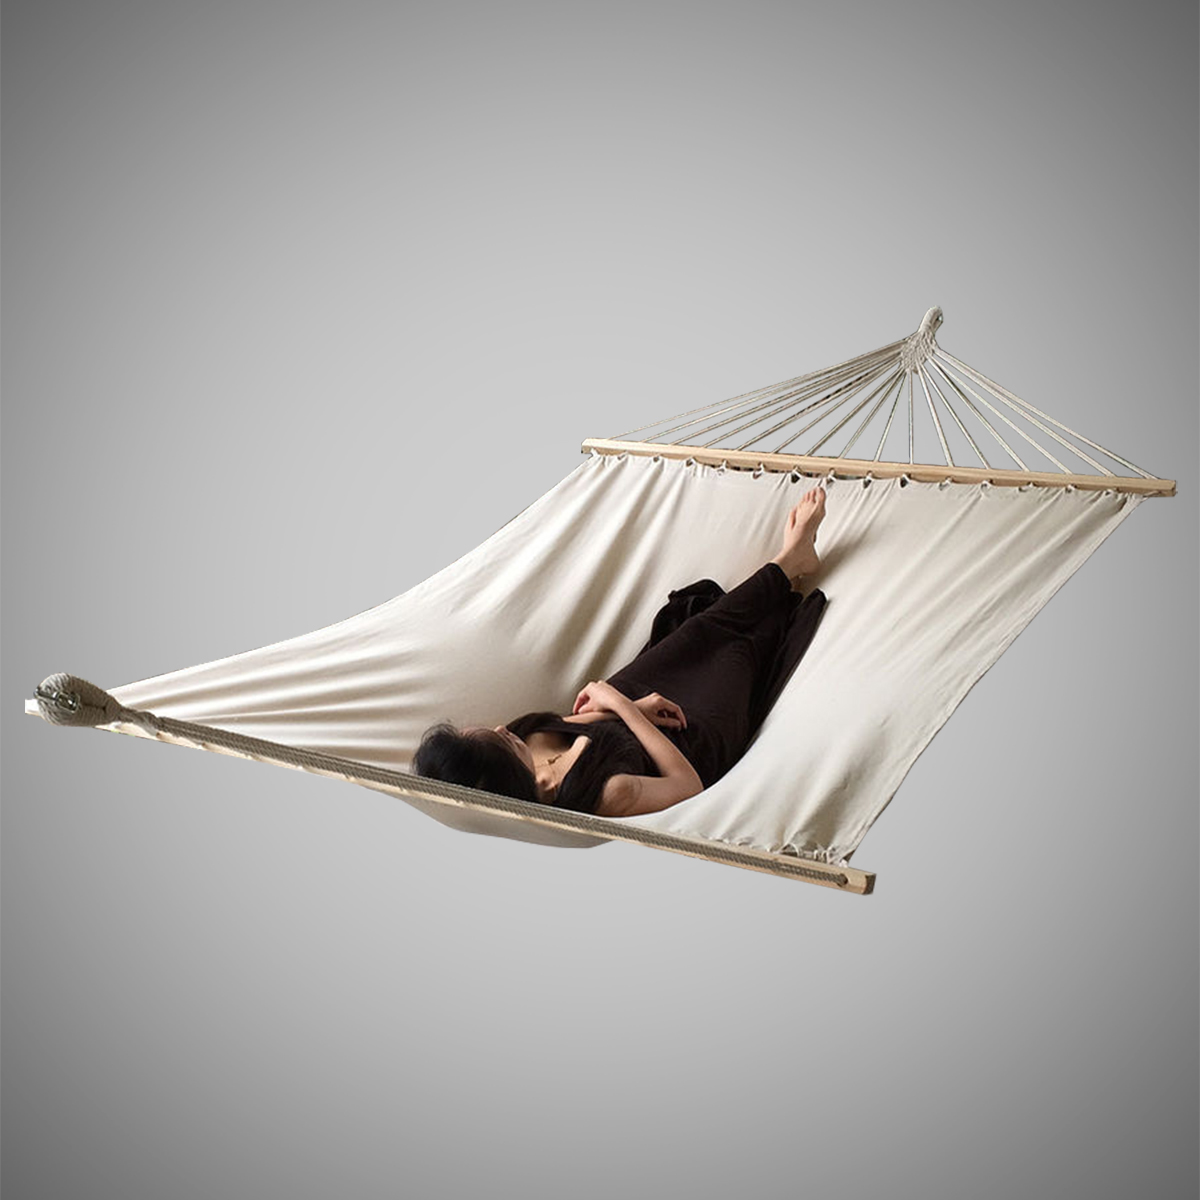 Double hammock tree 2 people person patio bed swing new for Net hammock bed